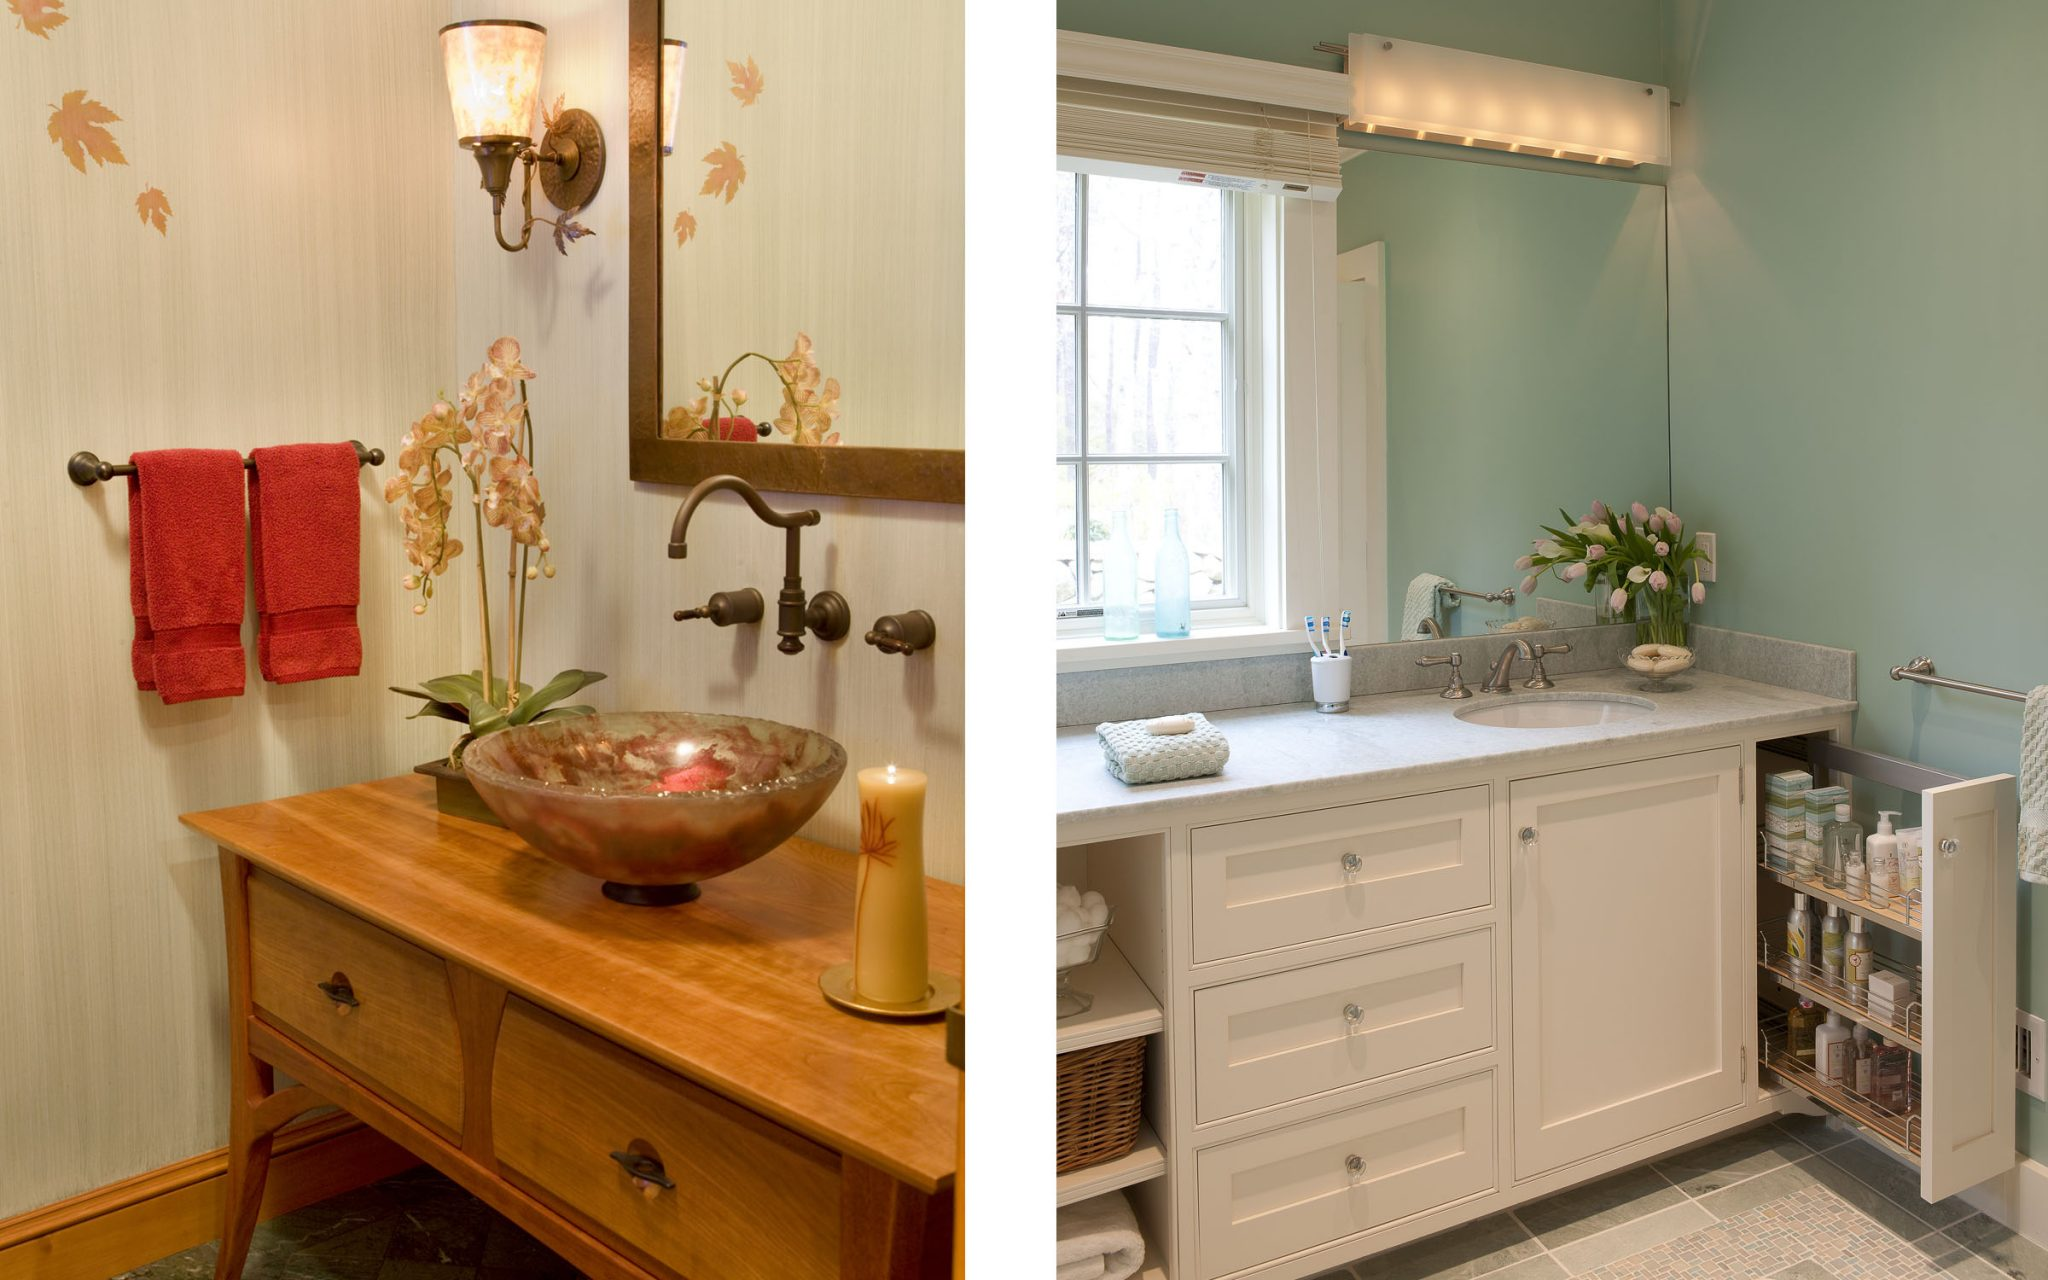 Two Bathrooms Designed By Boston Area Interior Design Firm Elizabeth Swartz Interiors That Are Featured